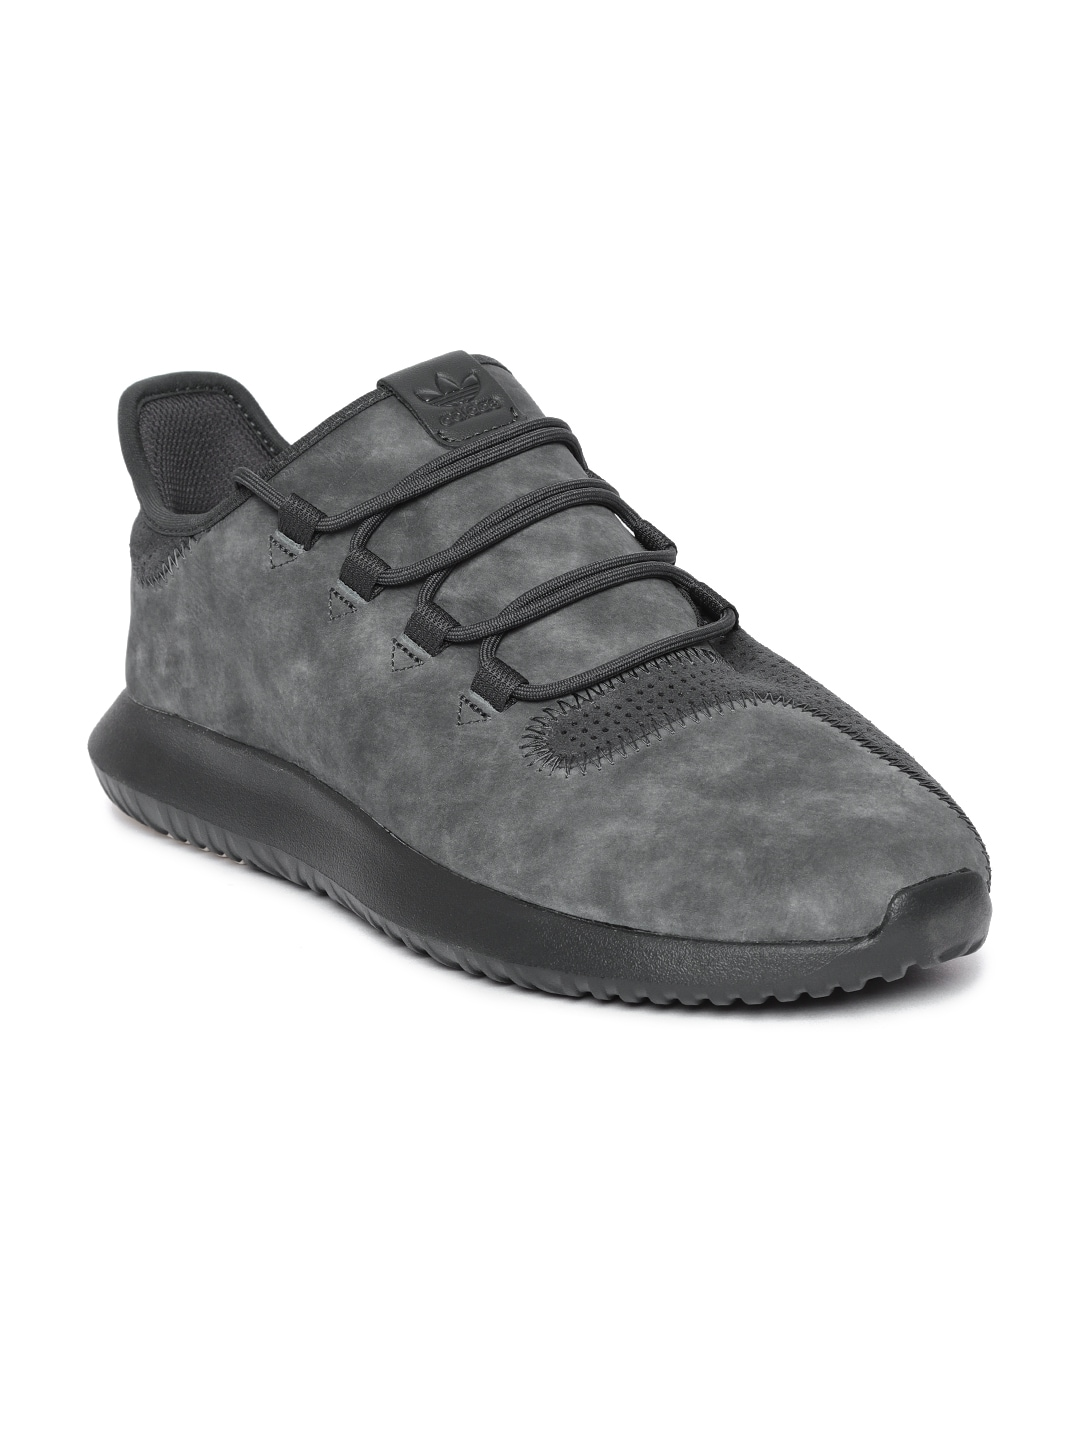 new style 47157 c8365 Adidas Derby - Buy Adidas Derby online in India